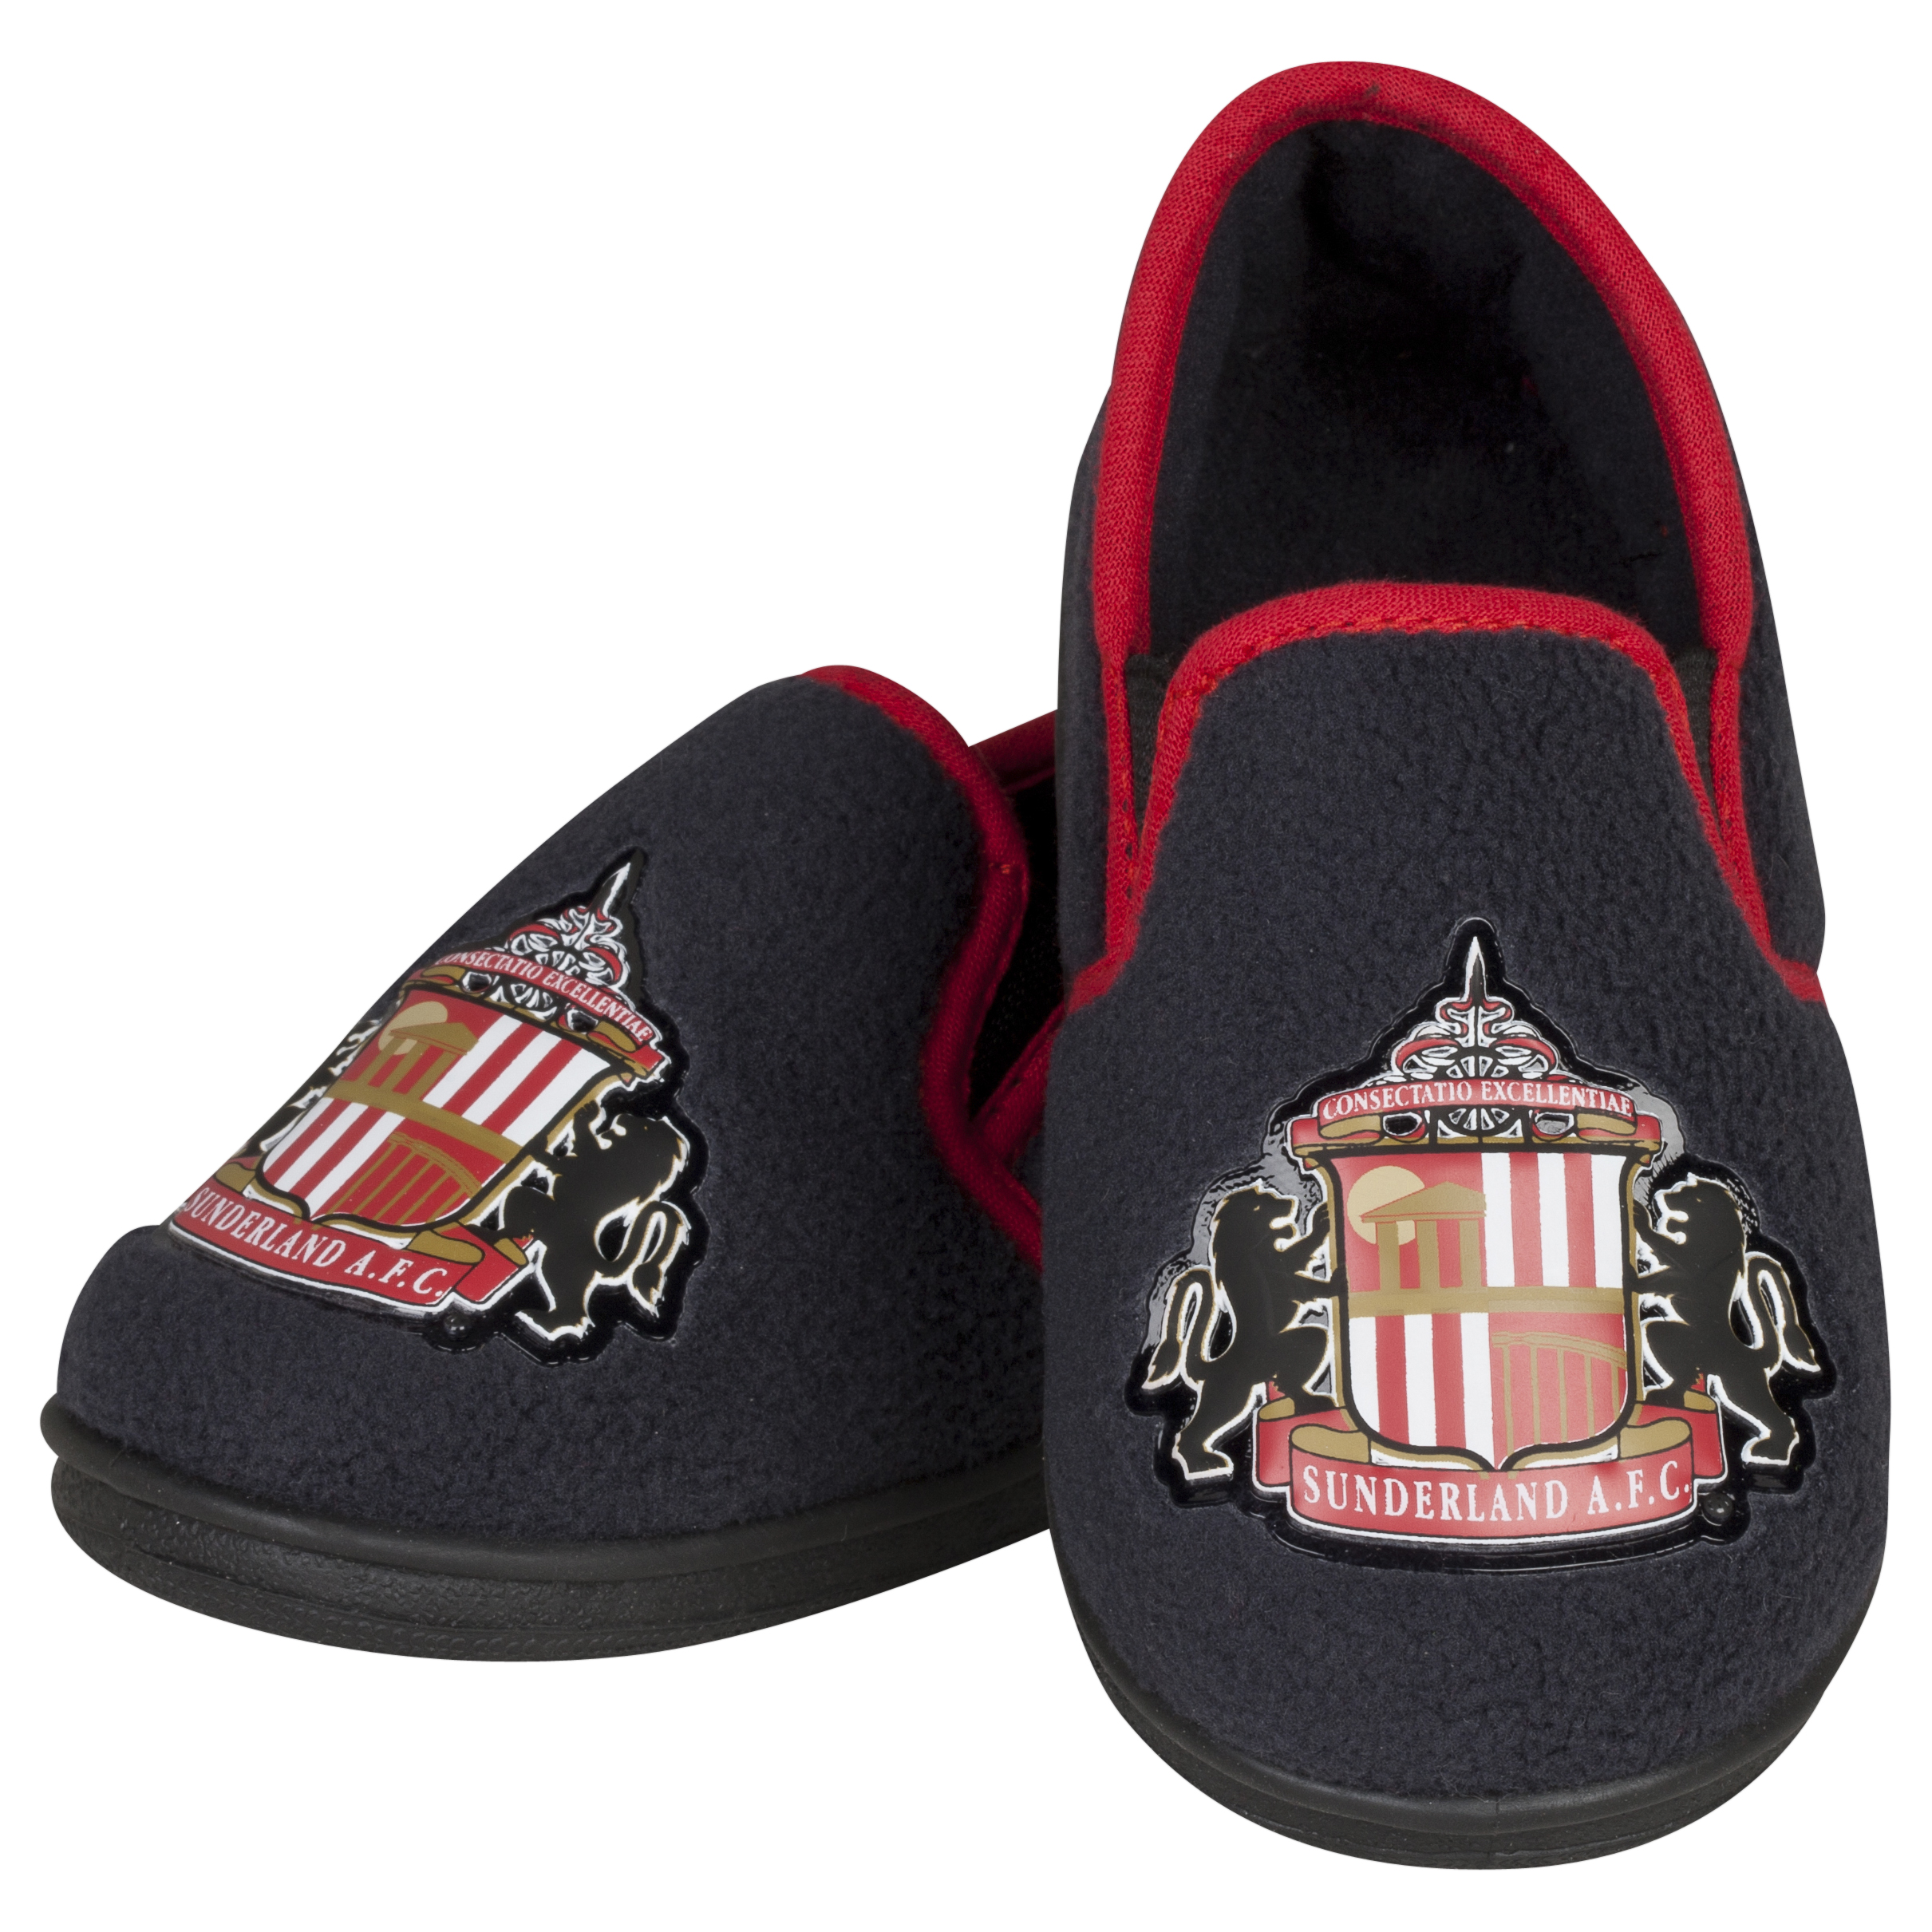 Sunderland Freddie Full Heel Slipper - Charcoal - Boys